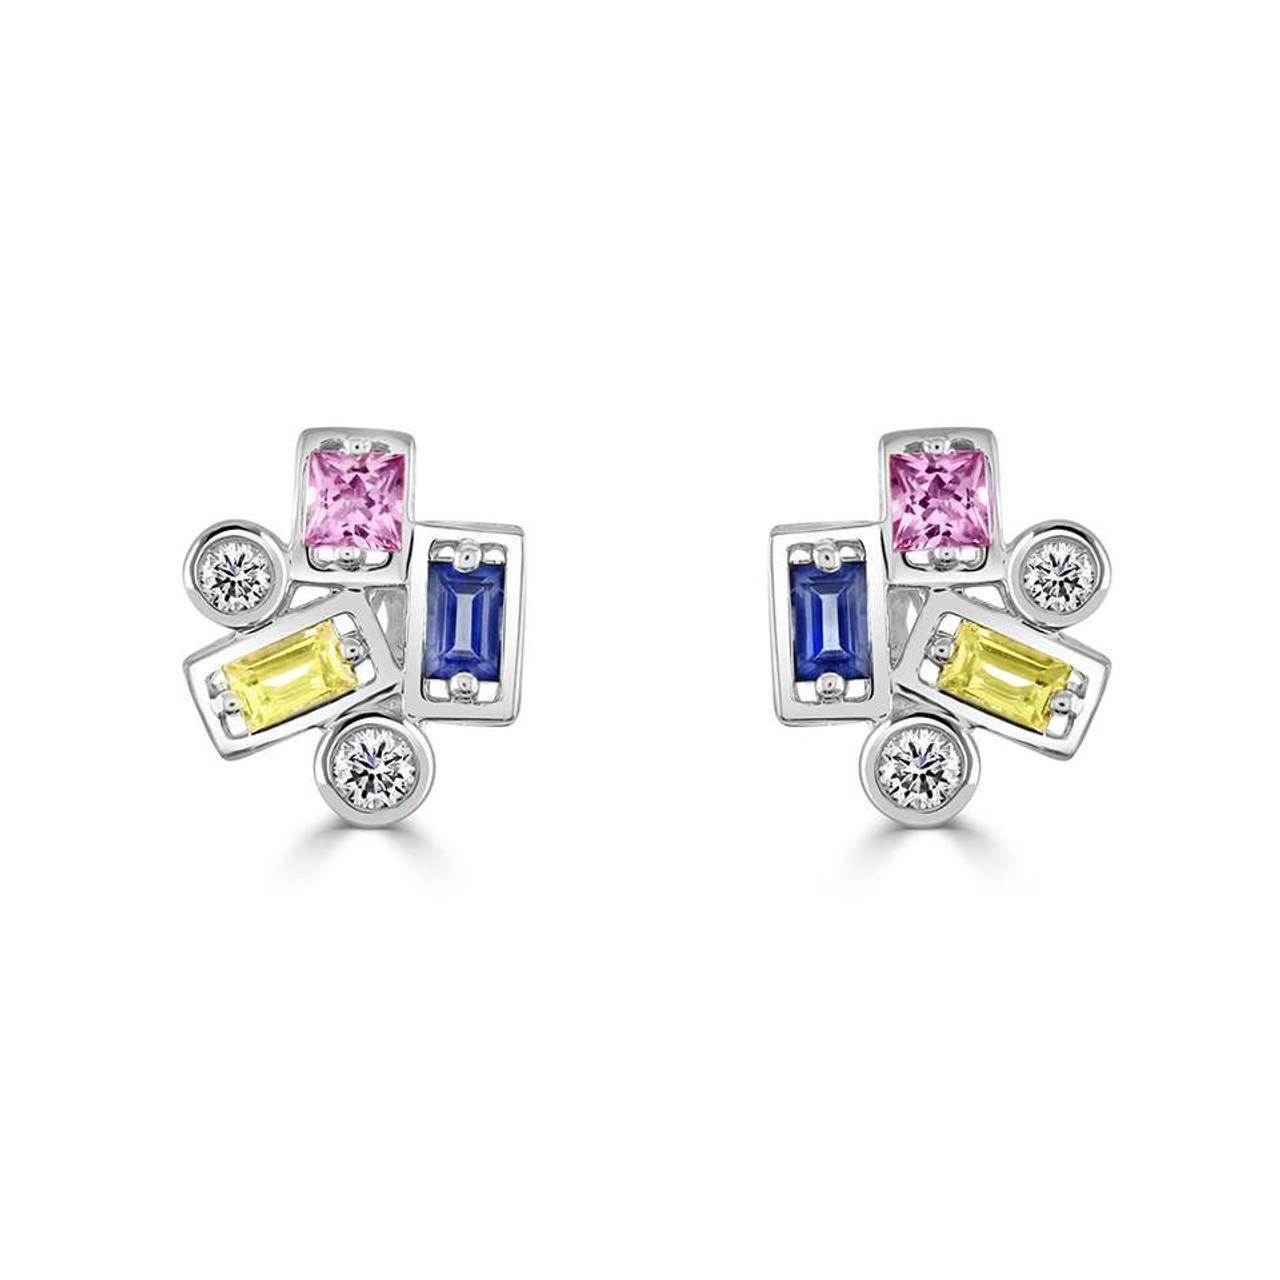 18ct White Gold Diamond & Sapphire Confetti Stud Earrings